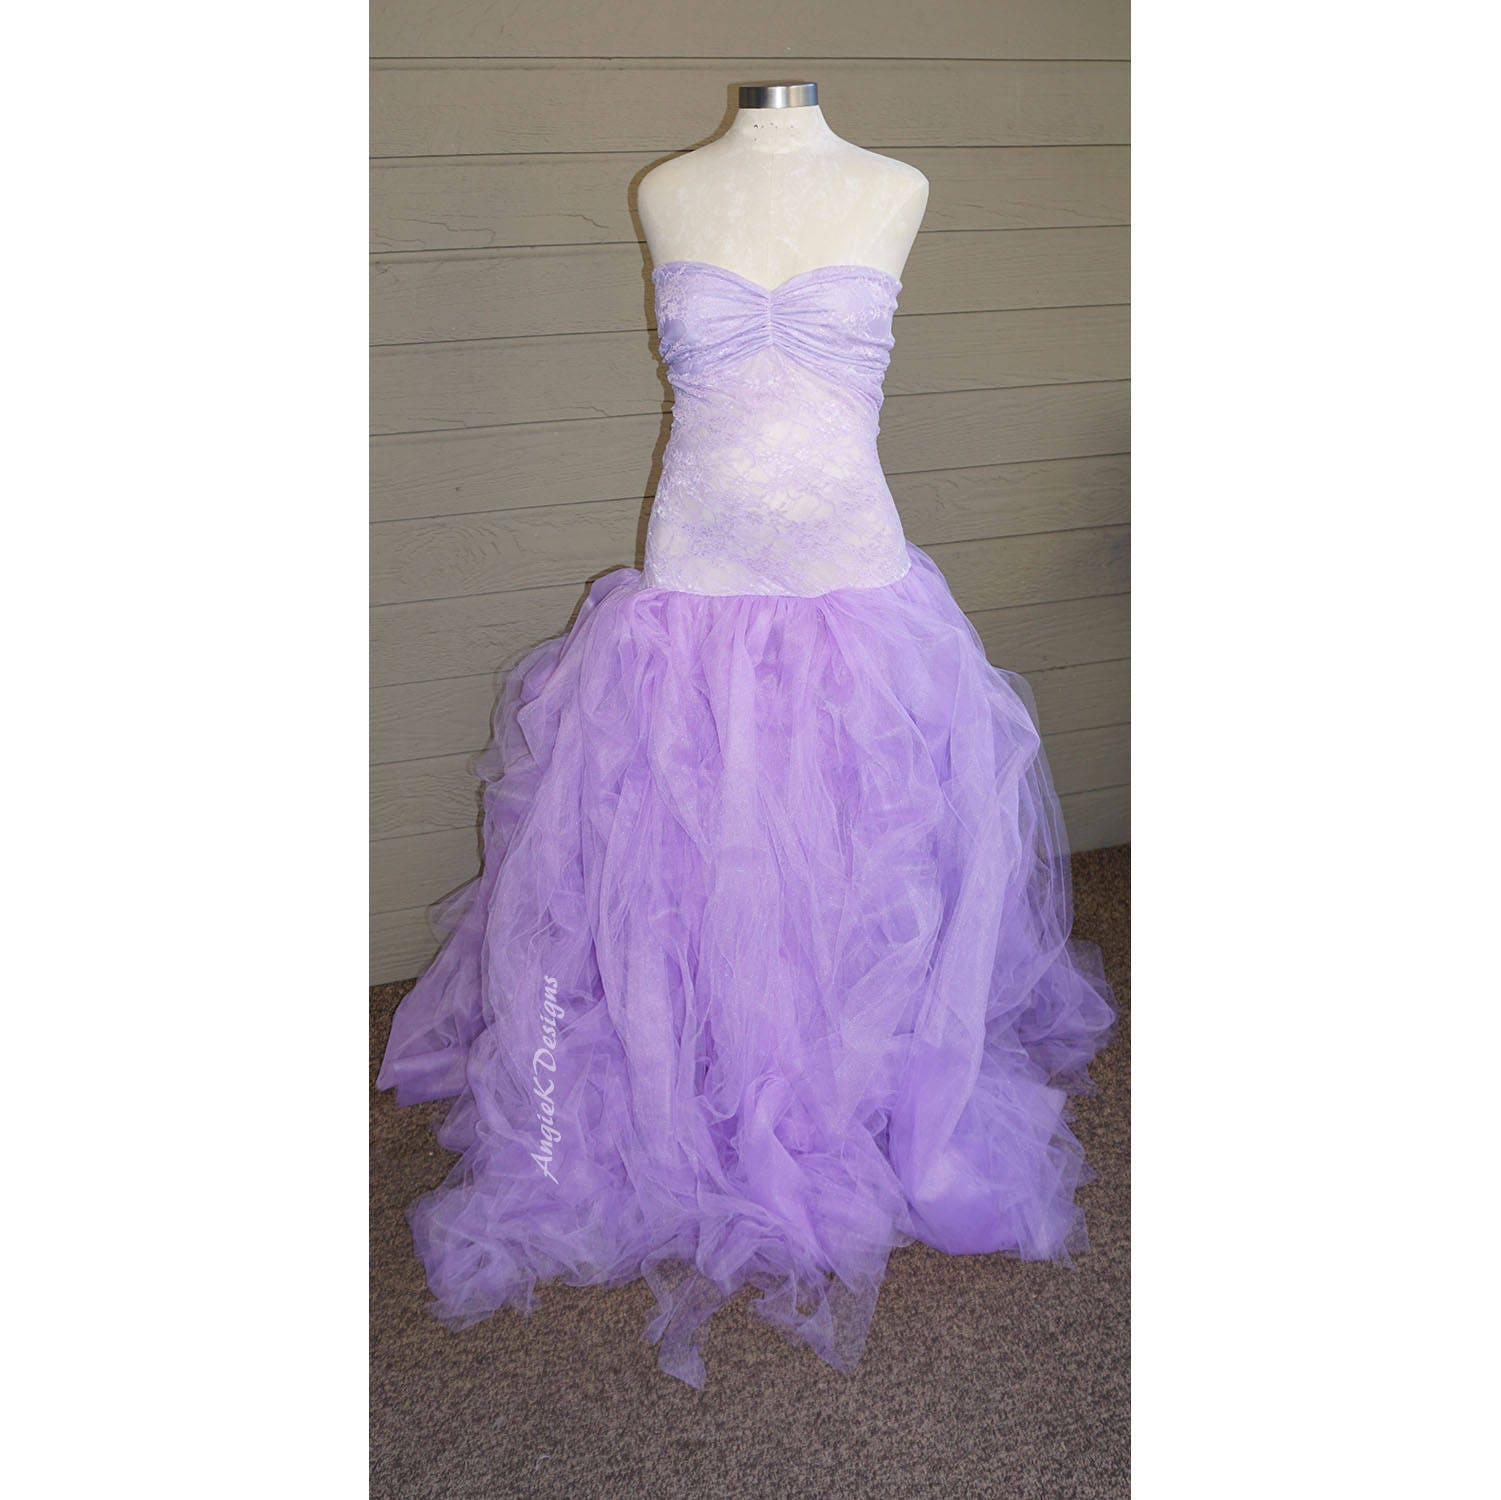 LAVENDER Purple Tulle Dress Gown Fluffy Flowy Tulle Maternity